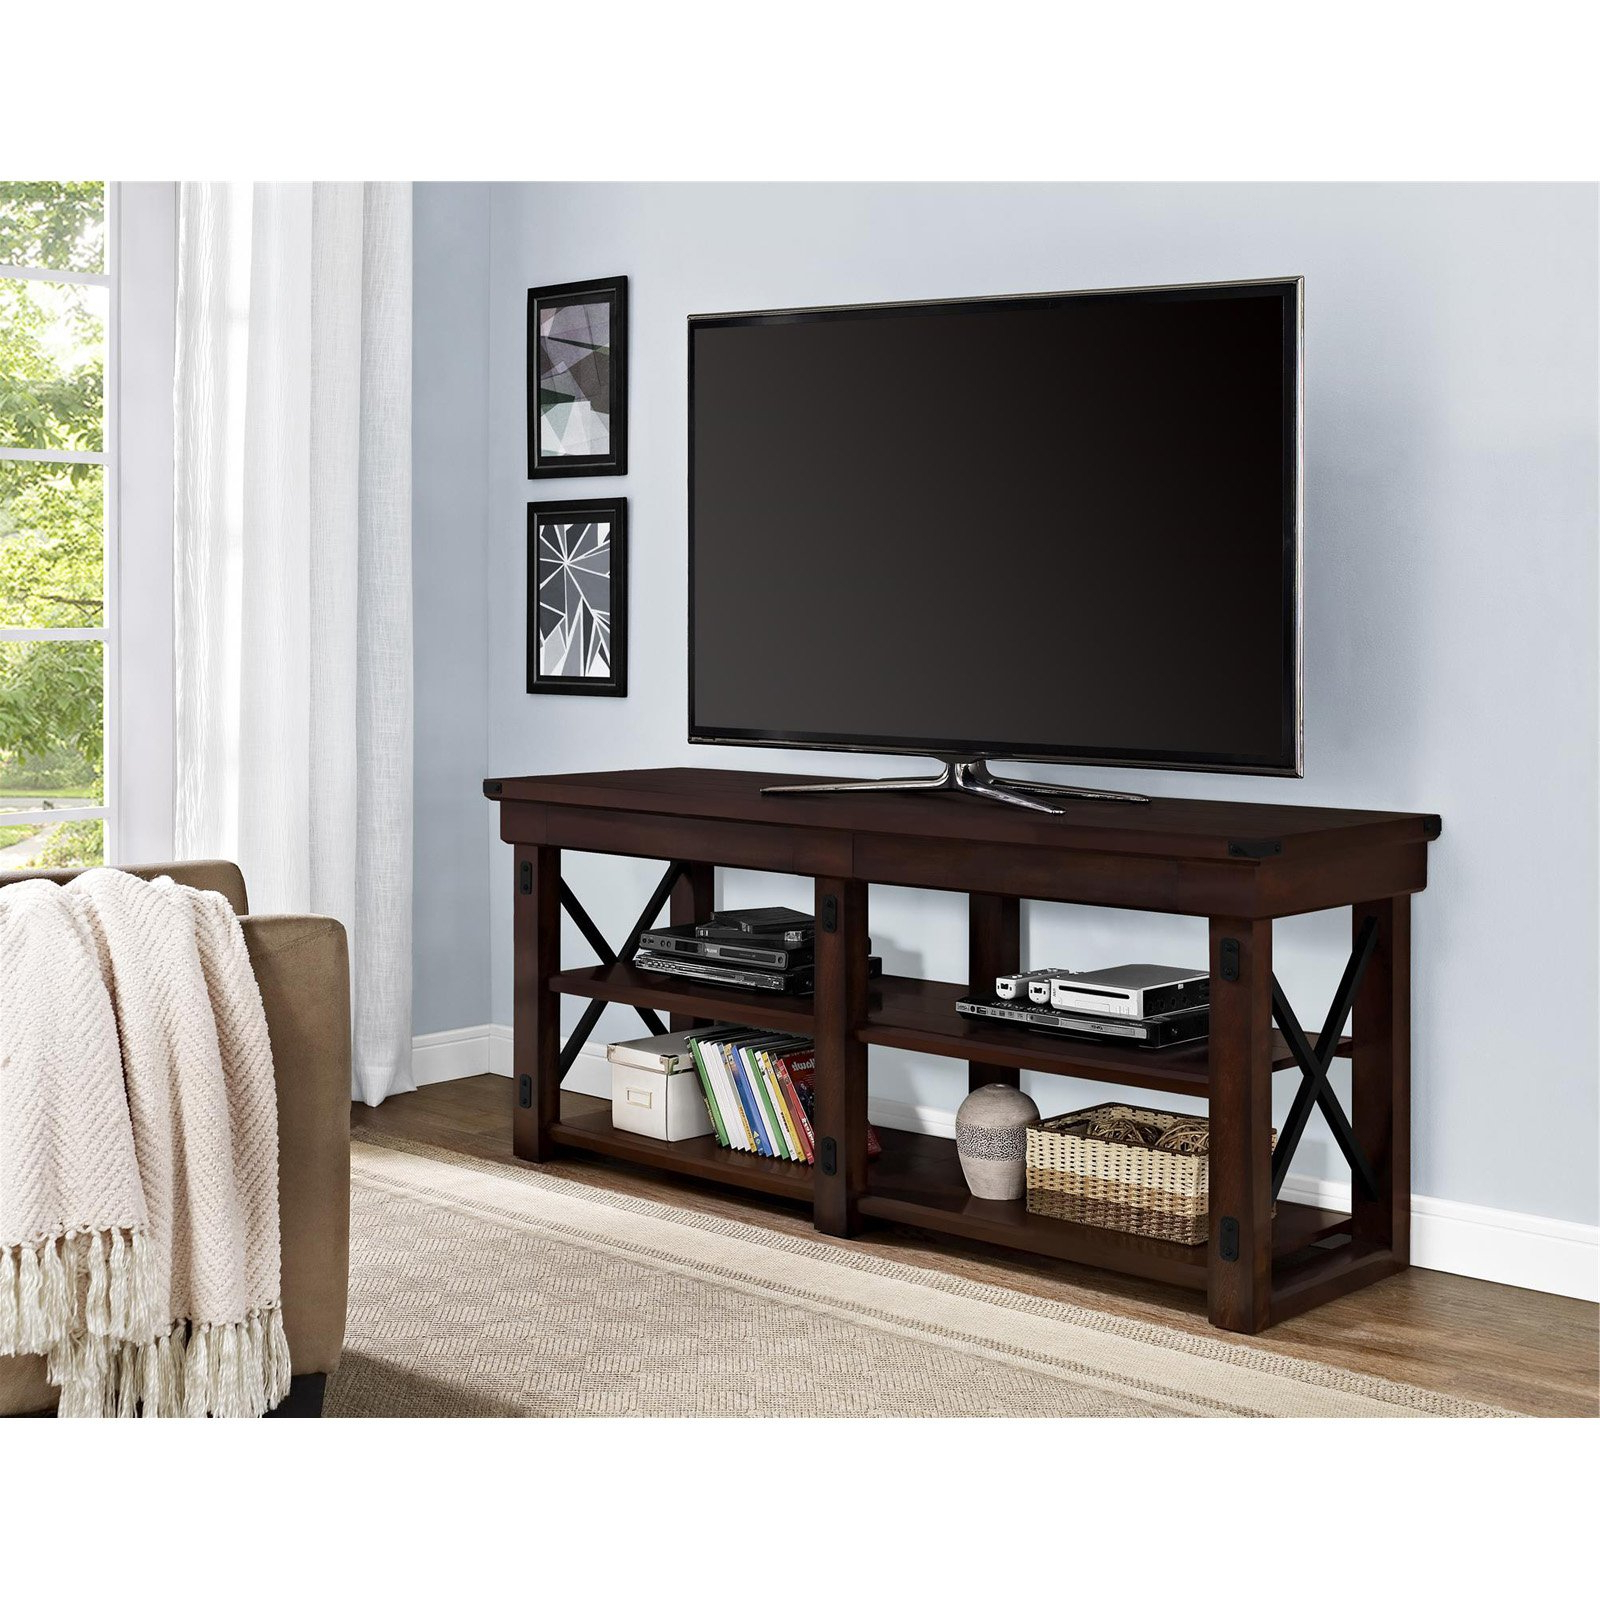 """Ameriwood Home Wildwood Tv Stand For Tvs Up To 65 Throughout Jowers Tv Stands For Tvs Up To 65"""" (View 6 of 20)"""